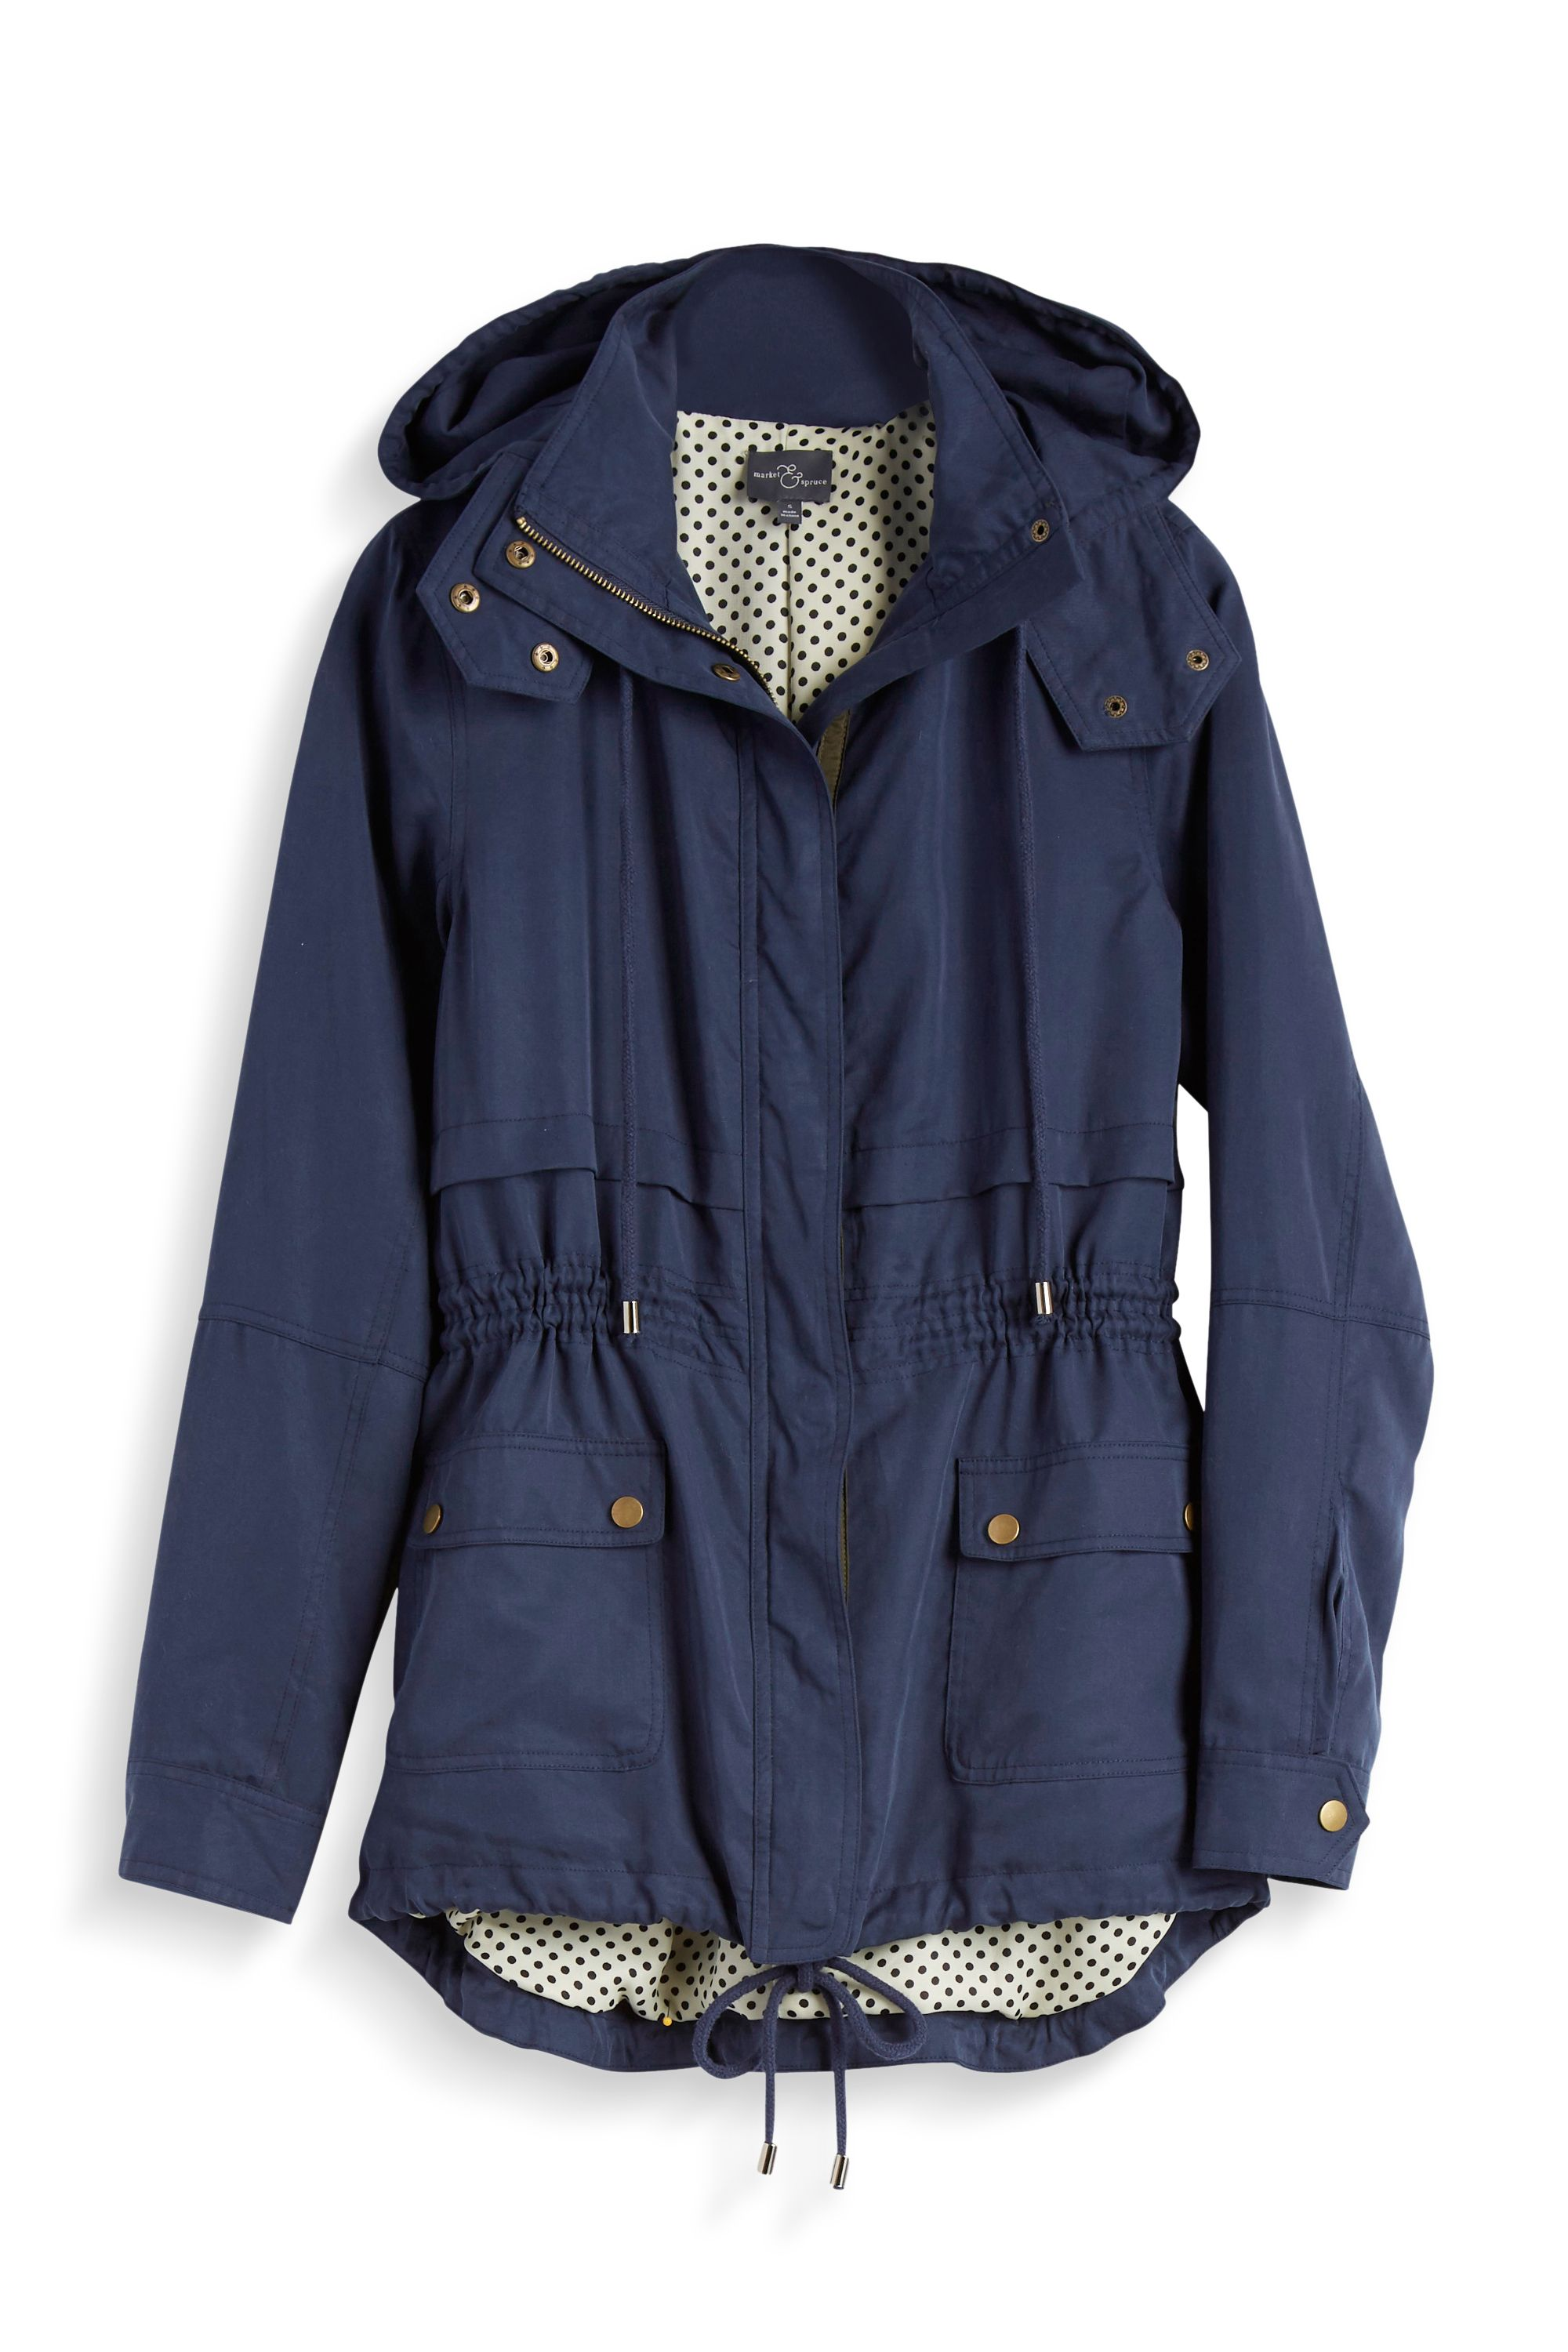 Inspired By You: We're Loving Your Fall #FixObsession | Anorak ...